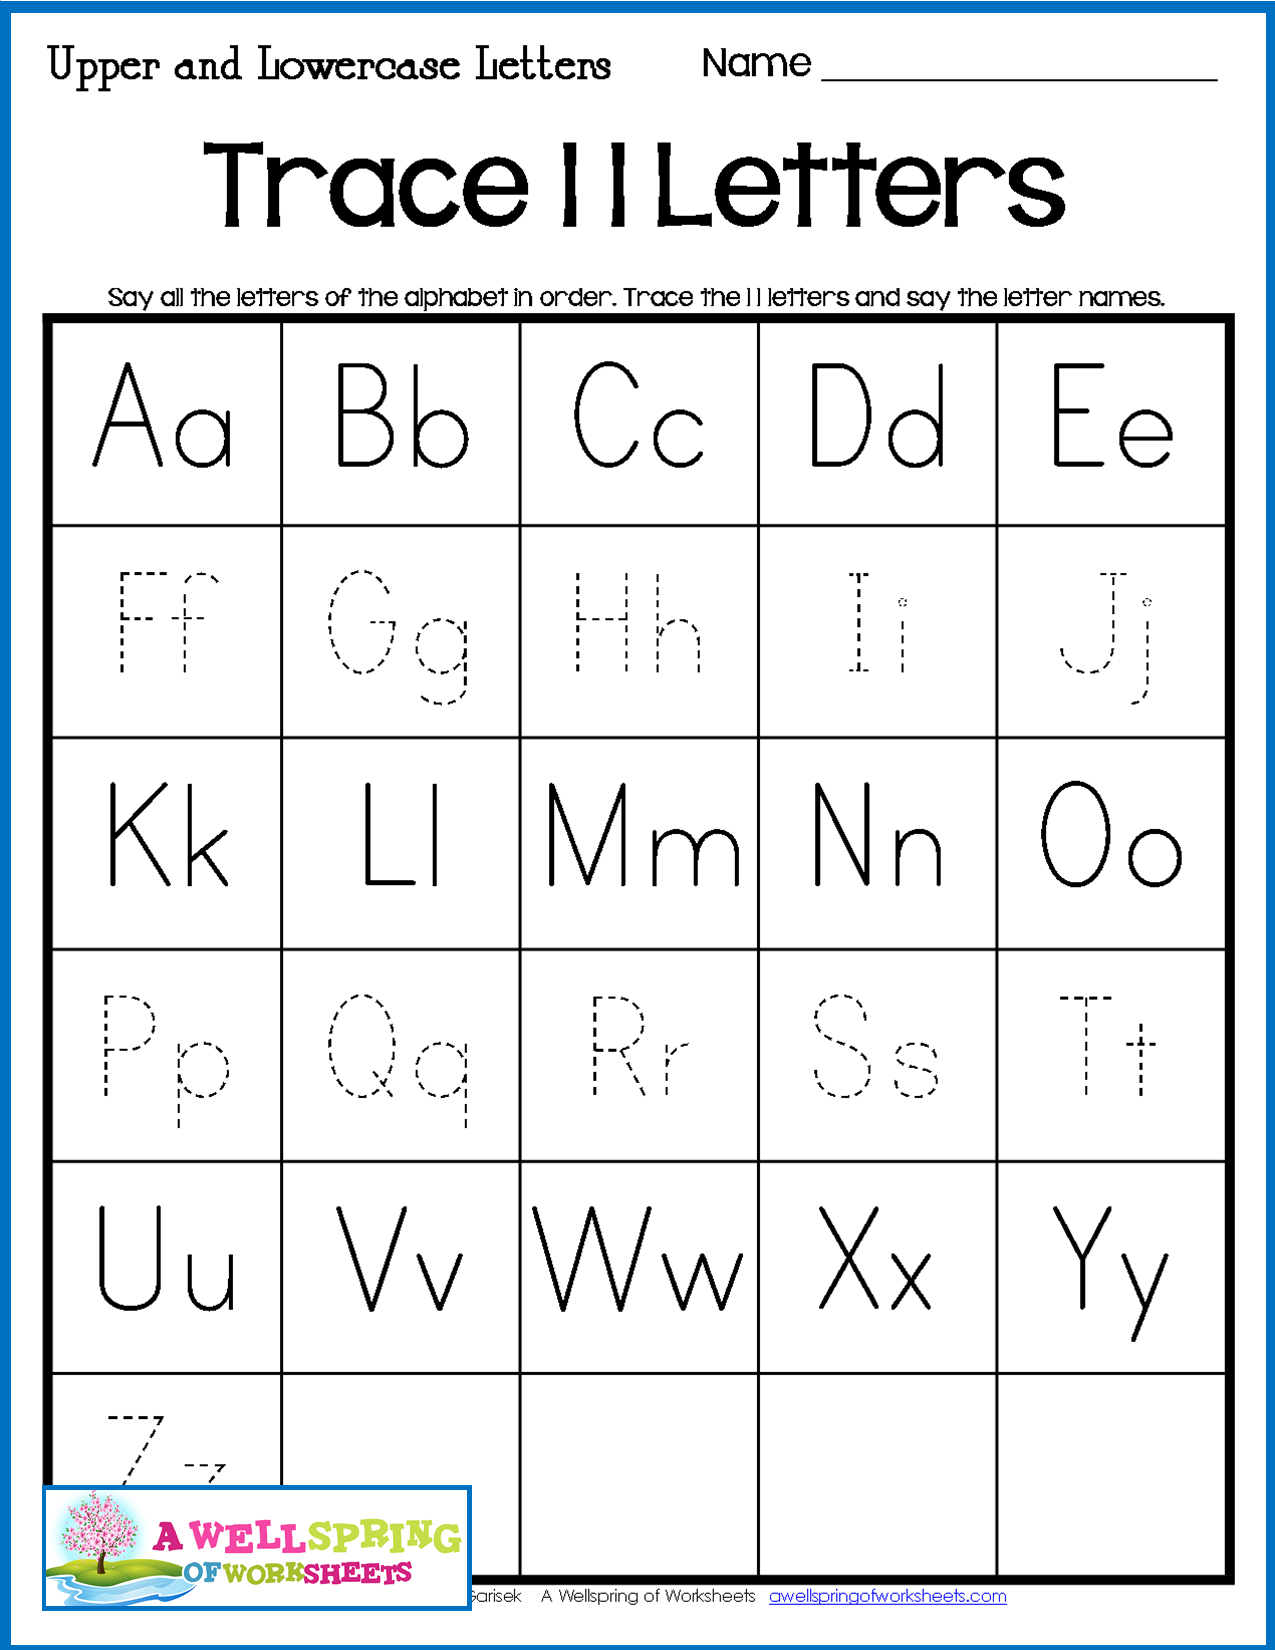 Alphabet Tracing Worksheets - Uppercase & Lowercase Letters with Alphabet Tracing Order